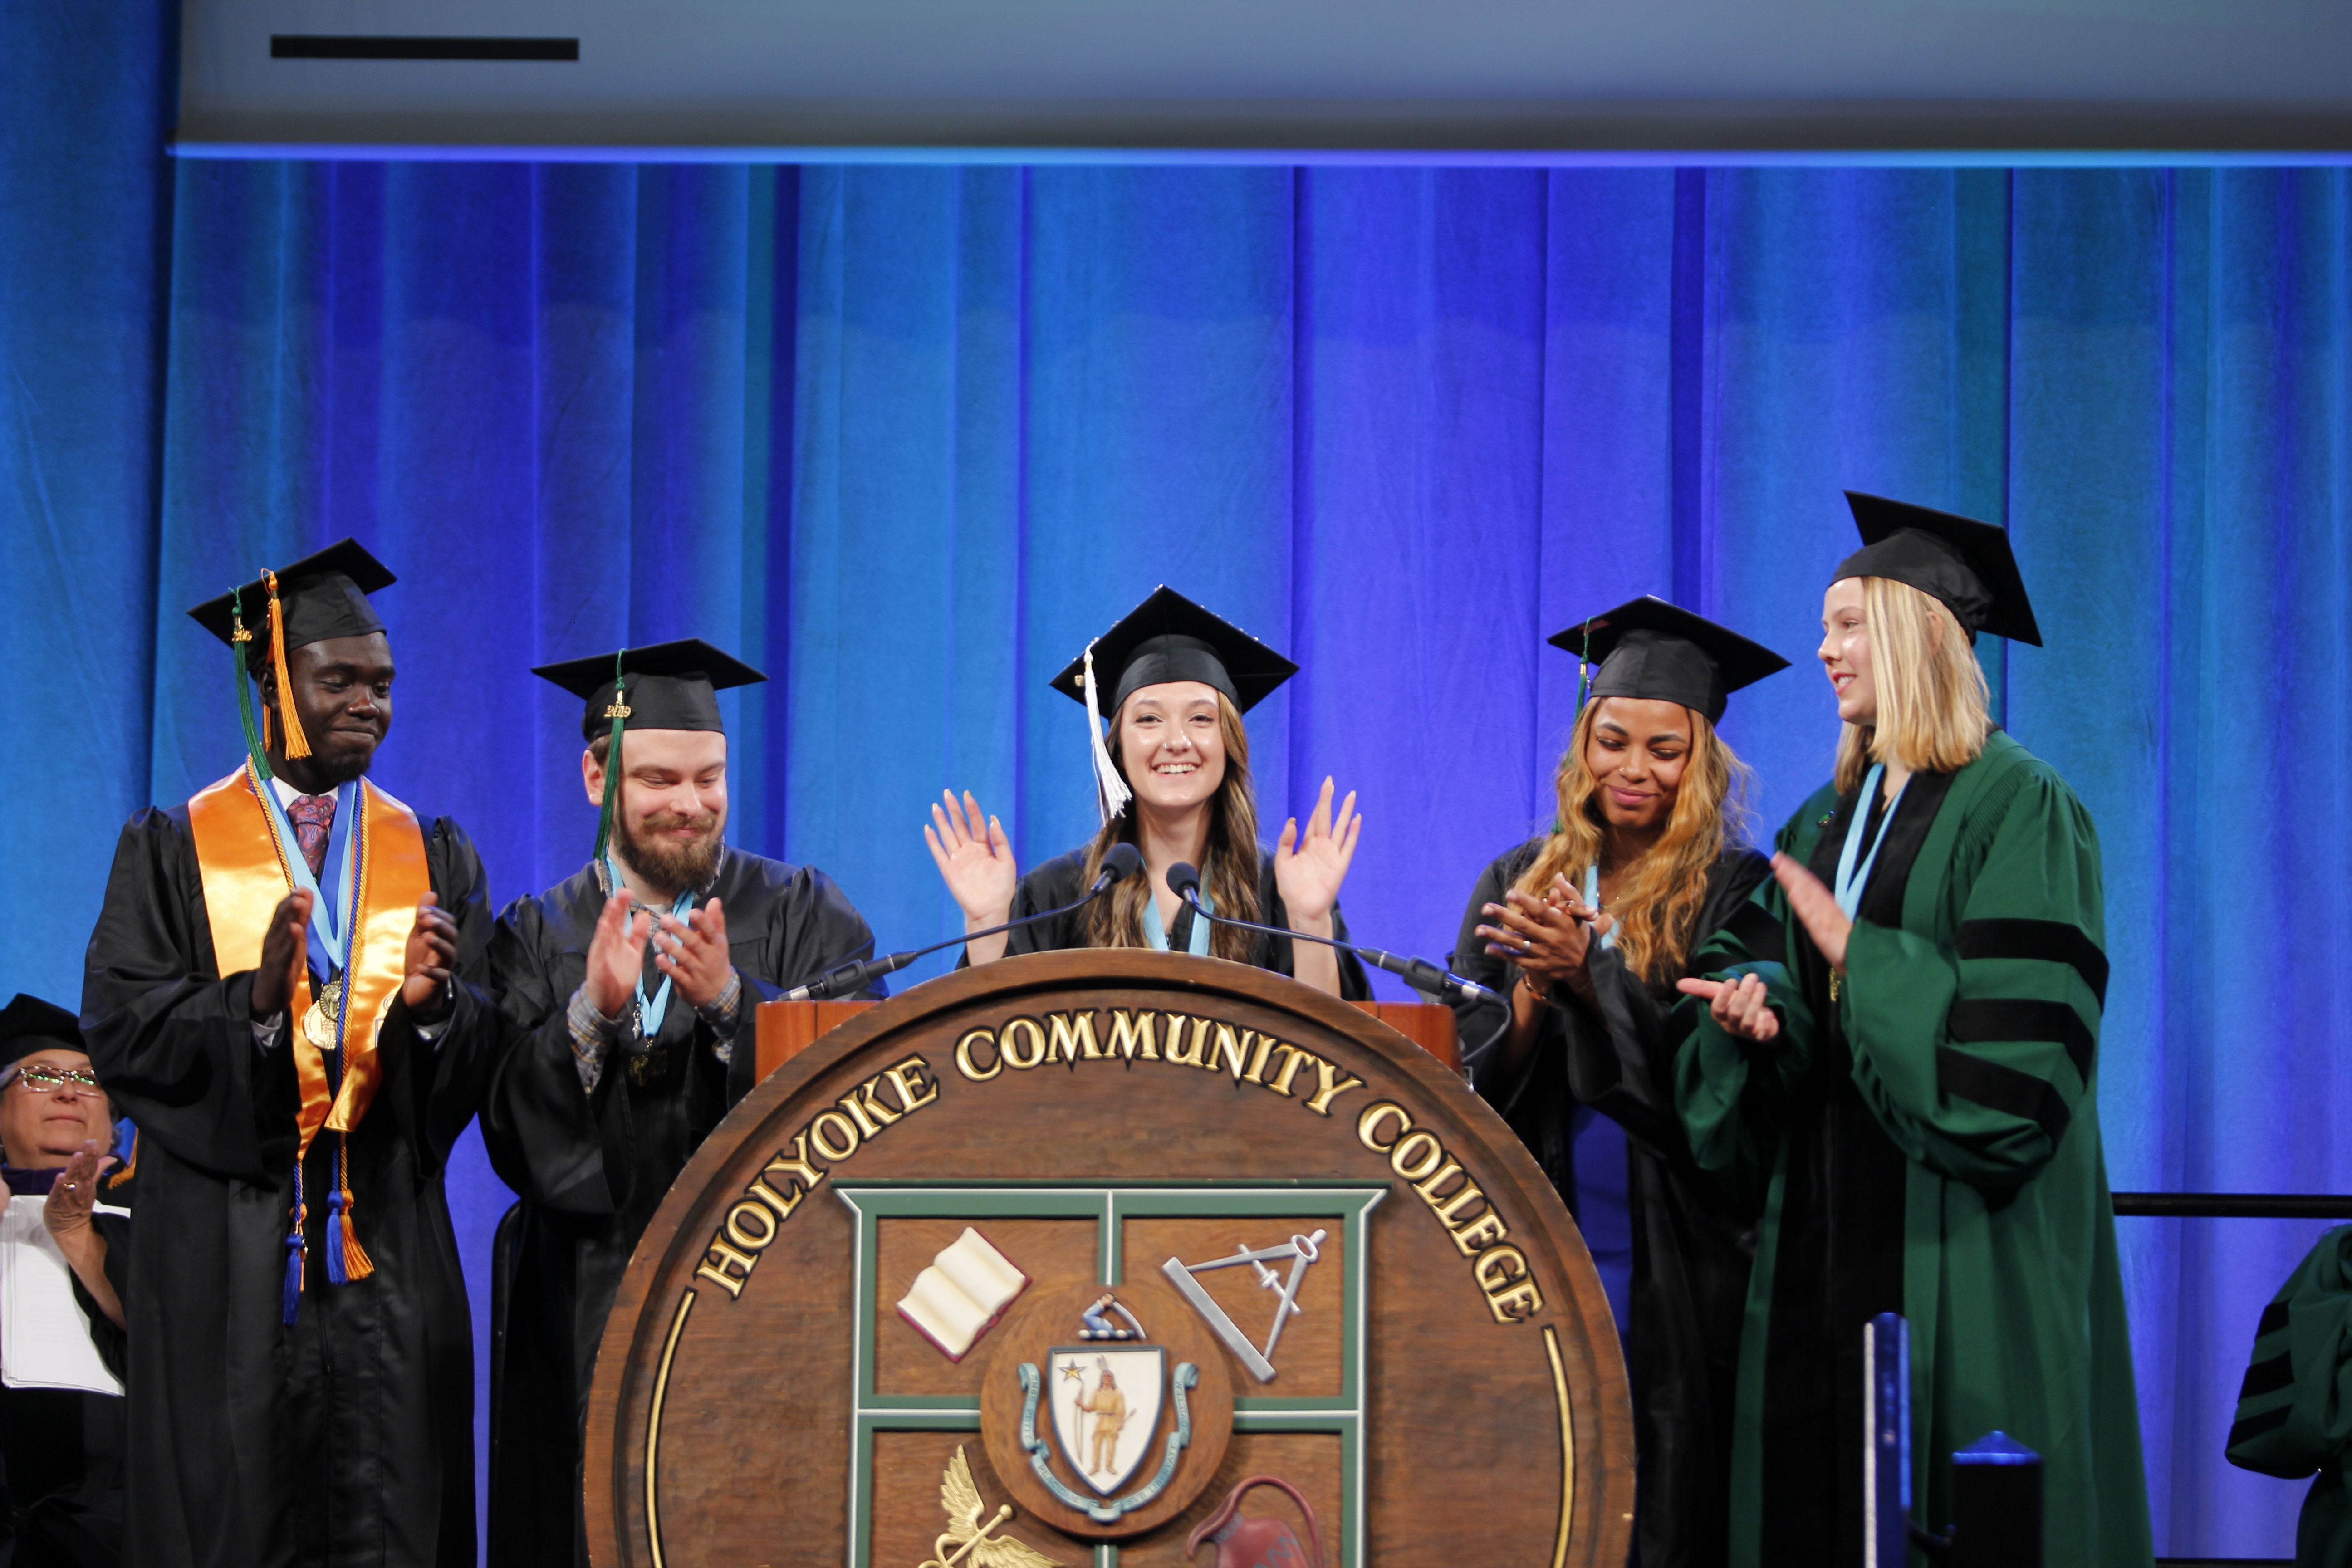 A group of students leaders at Holyoke Community College presents the class gift during Commencement 2019 at the MassMutual Center in Springfield.